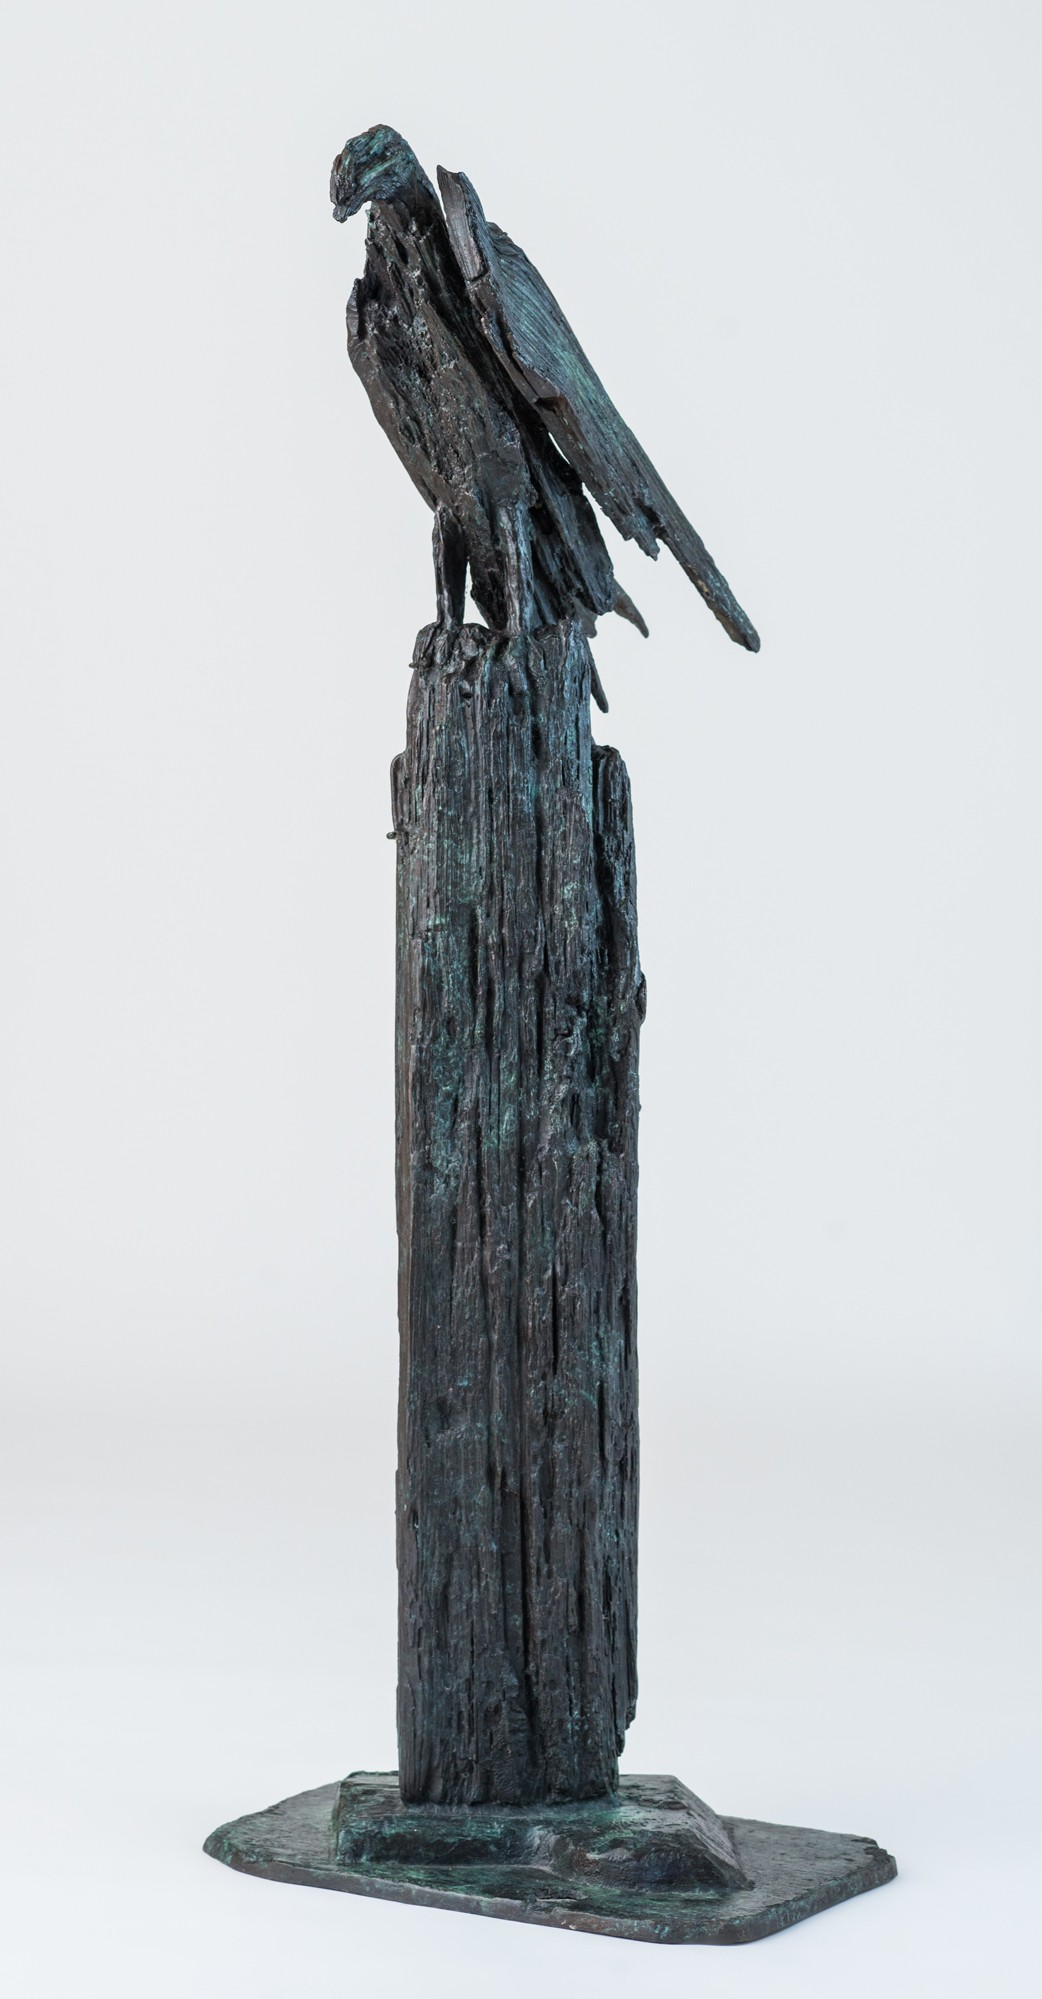 Upon a Rough Bark,  (after 'Hawk Roosting' by Ted Hughes),  H97 x W36 x D33cm,   Weight 30 Kg,  Bronze only edition of 9